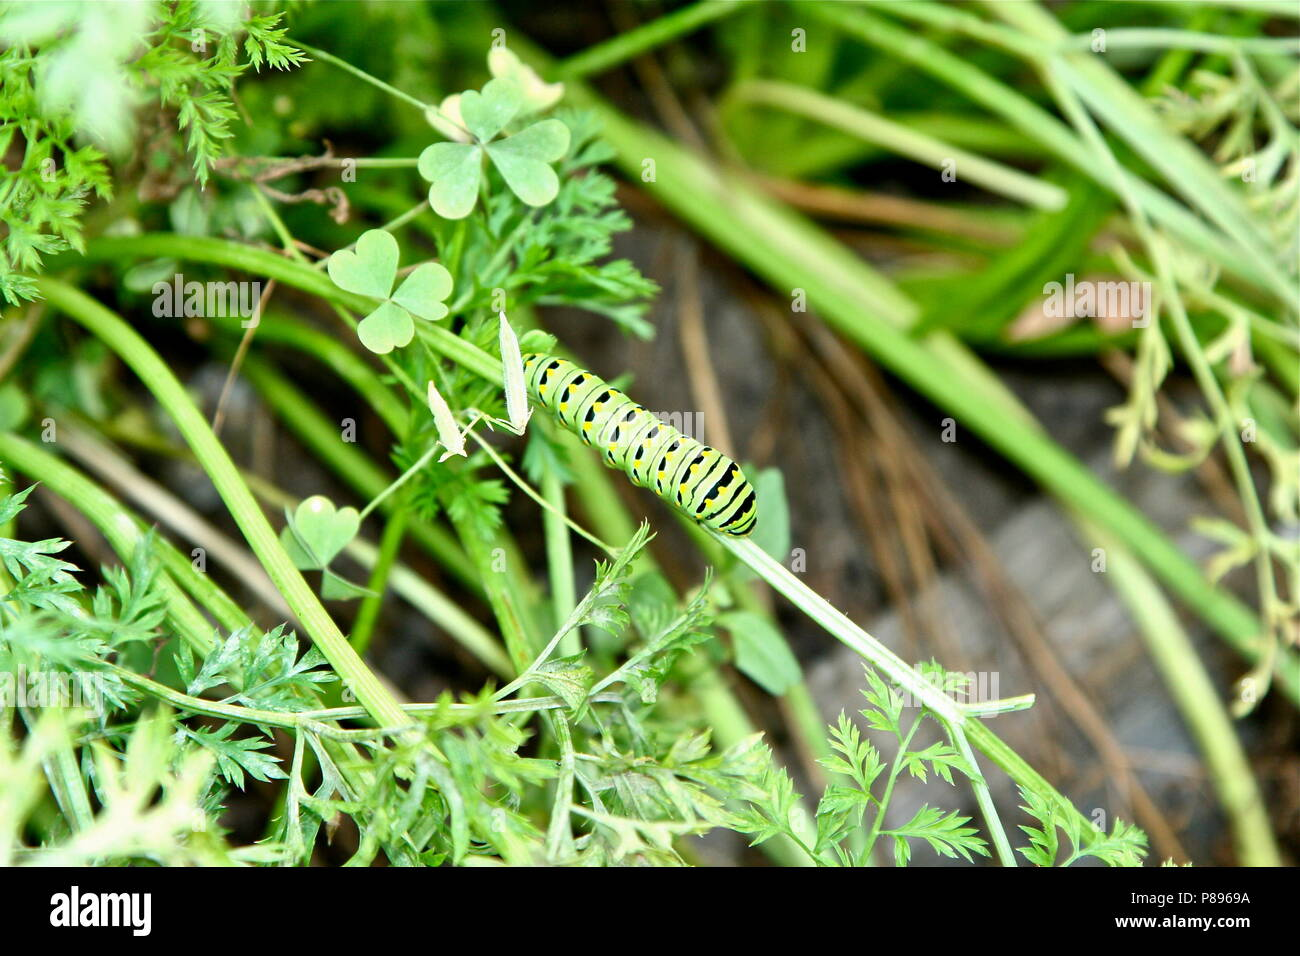 Black Swallowtail Caterpillar - Stock Image